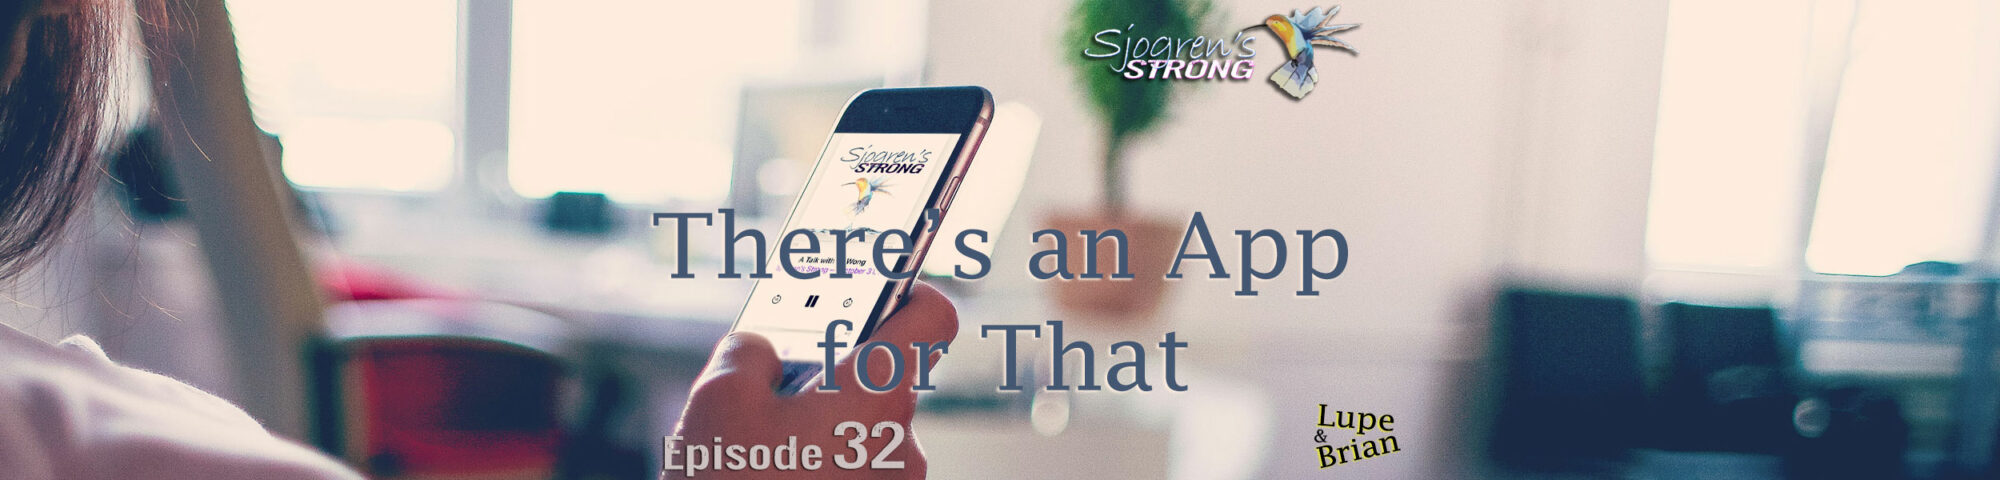 Episode 32, There's an App for That, on Sjogren's Strong